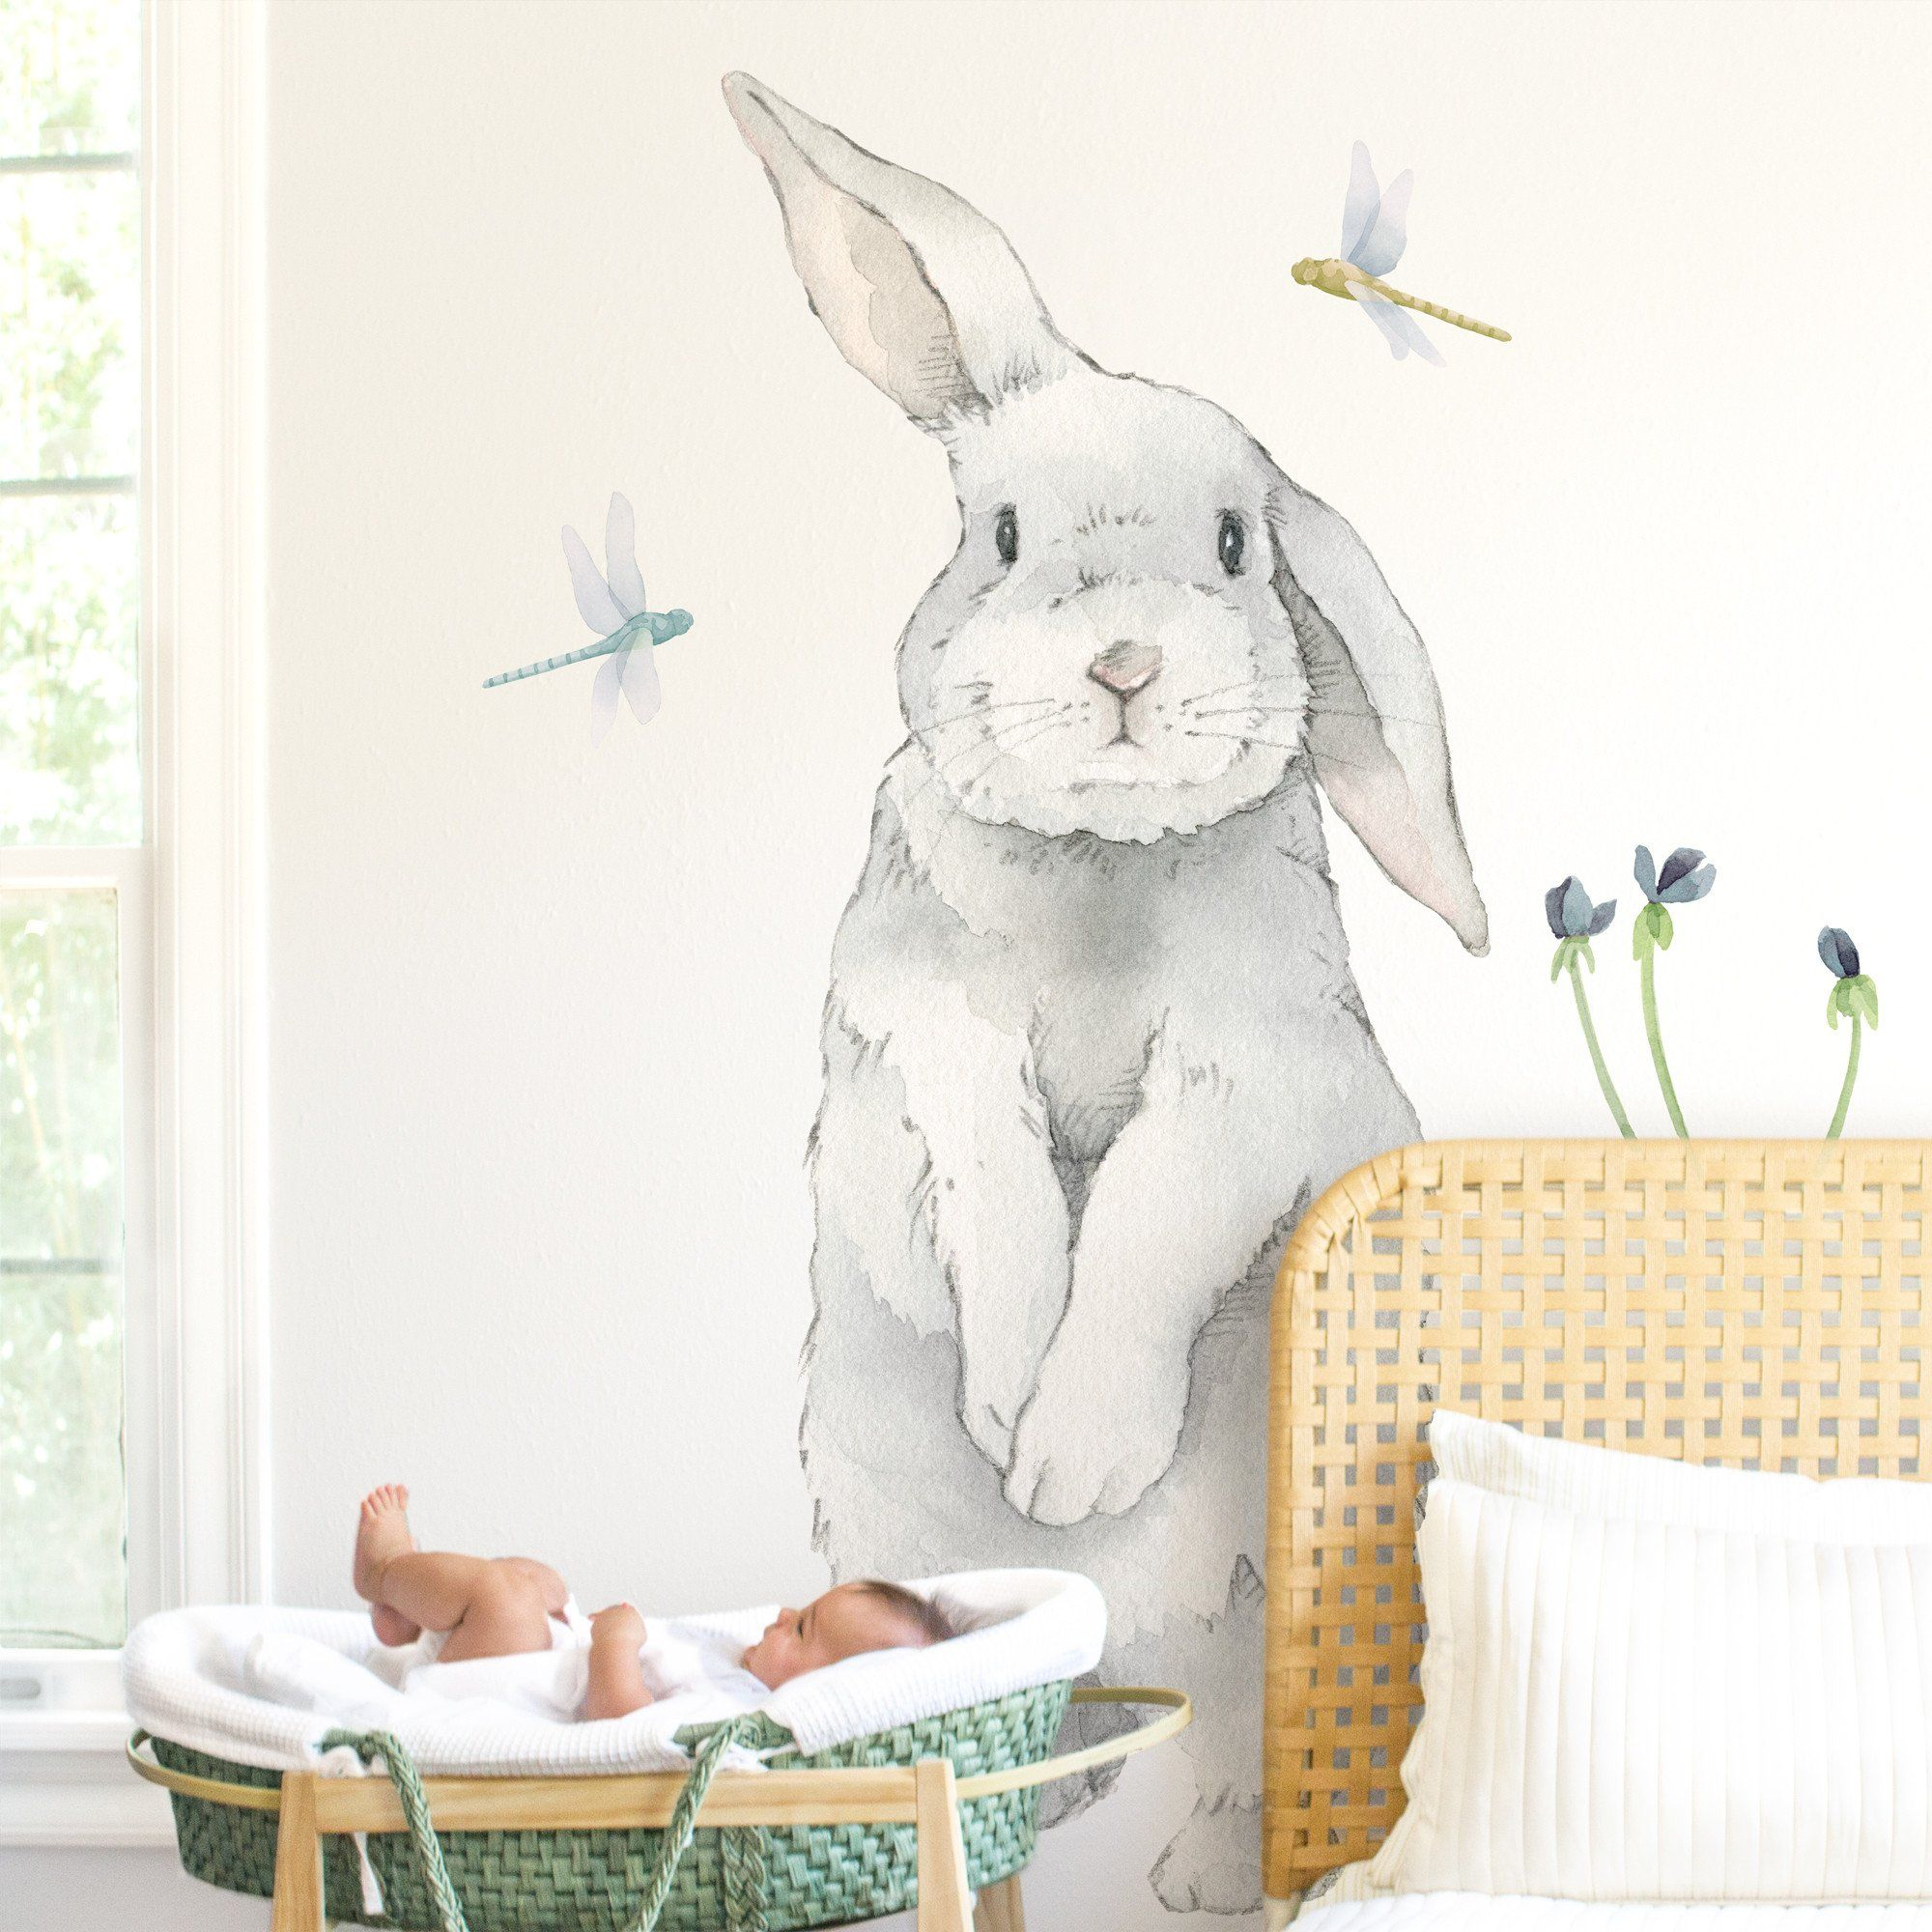 Big Bunny Wall Decal - Project Nursery